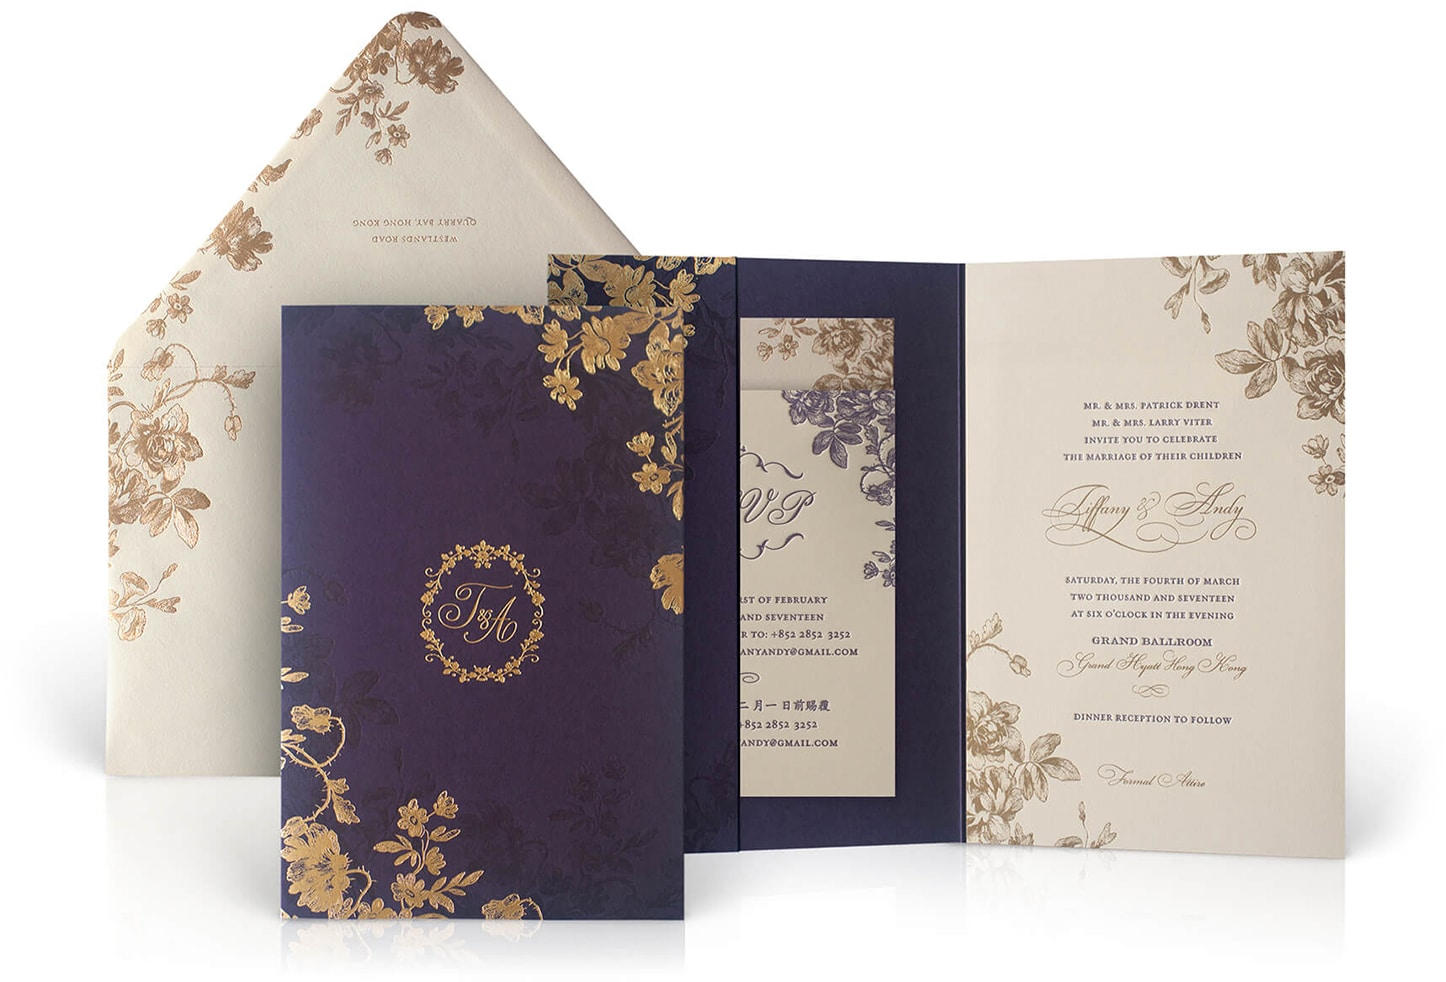 Grand Hyatt Hong Kong wedding invitation